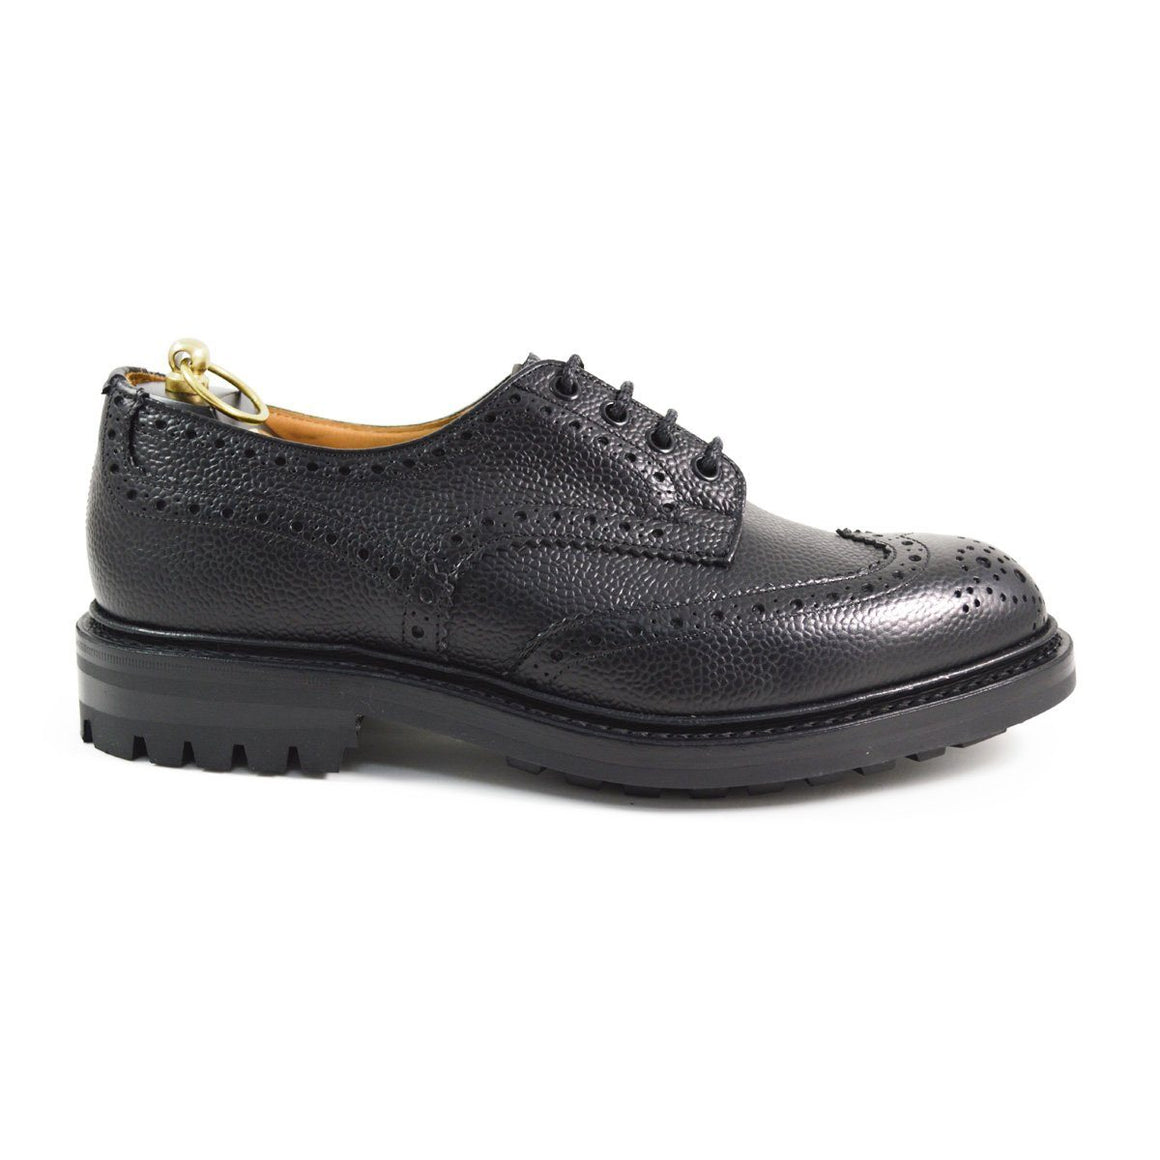 Trickers ILKLEY - Black